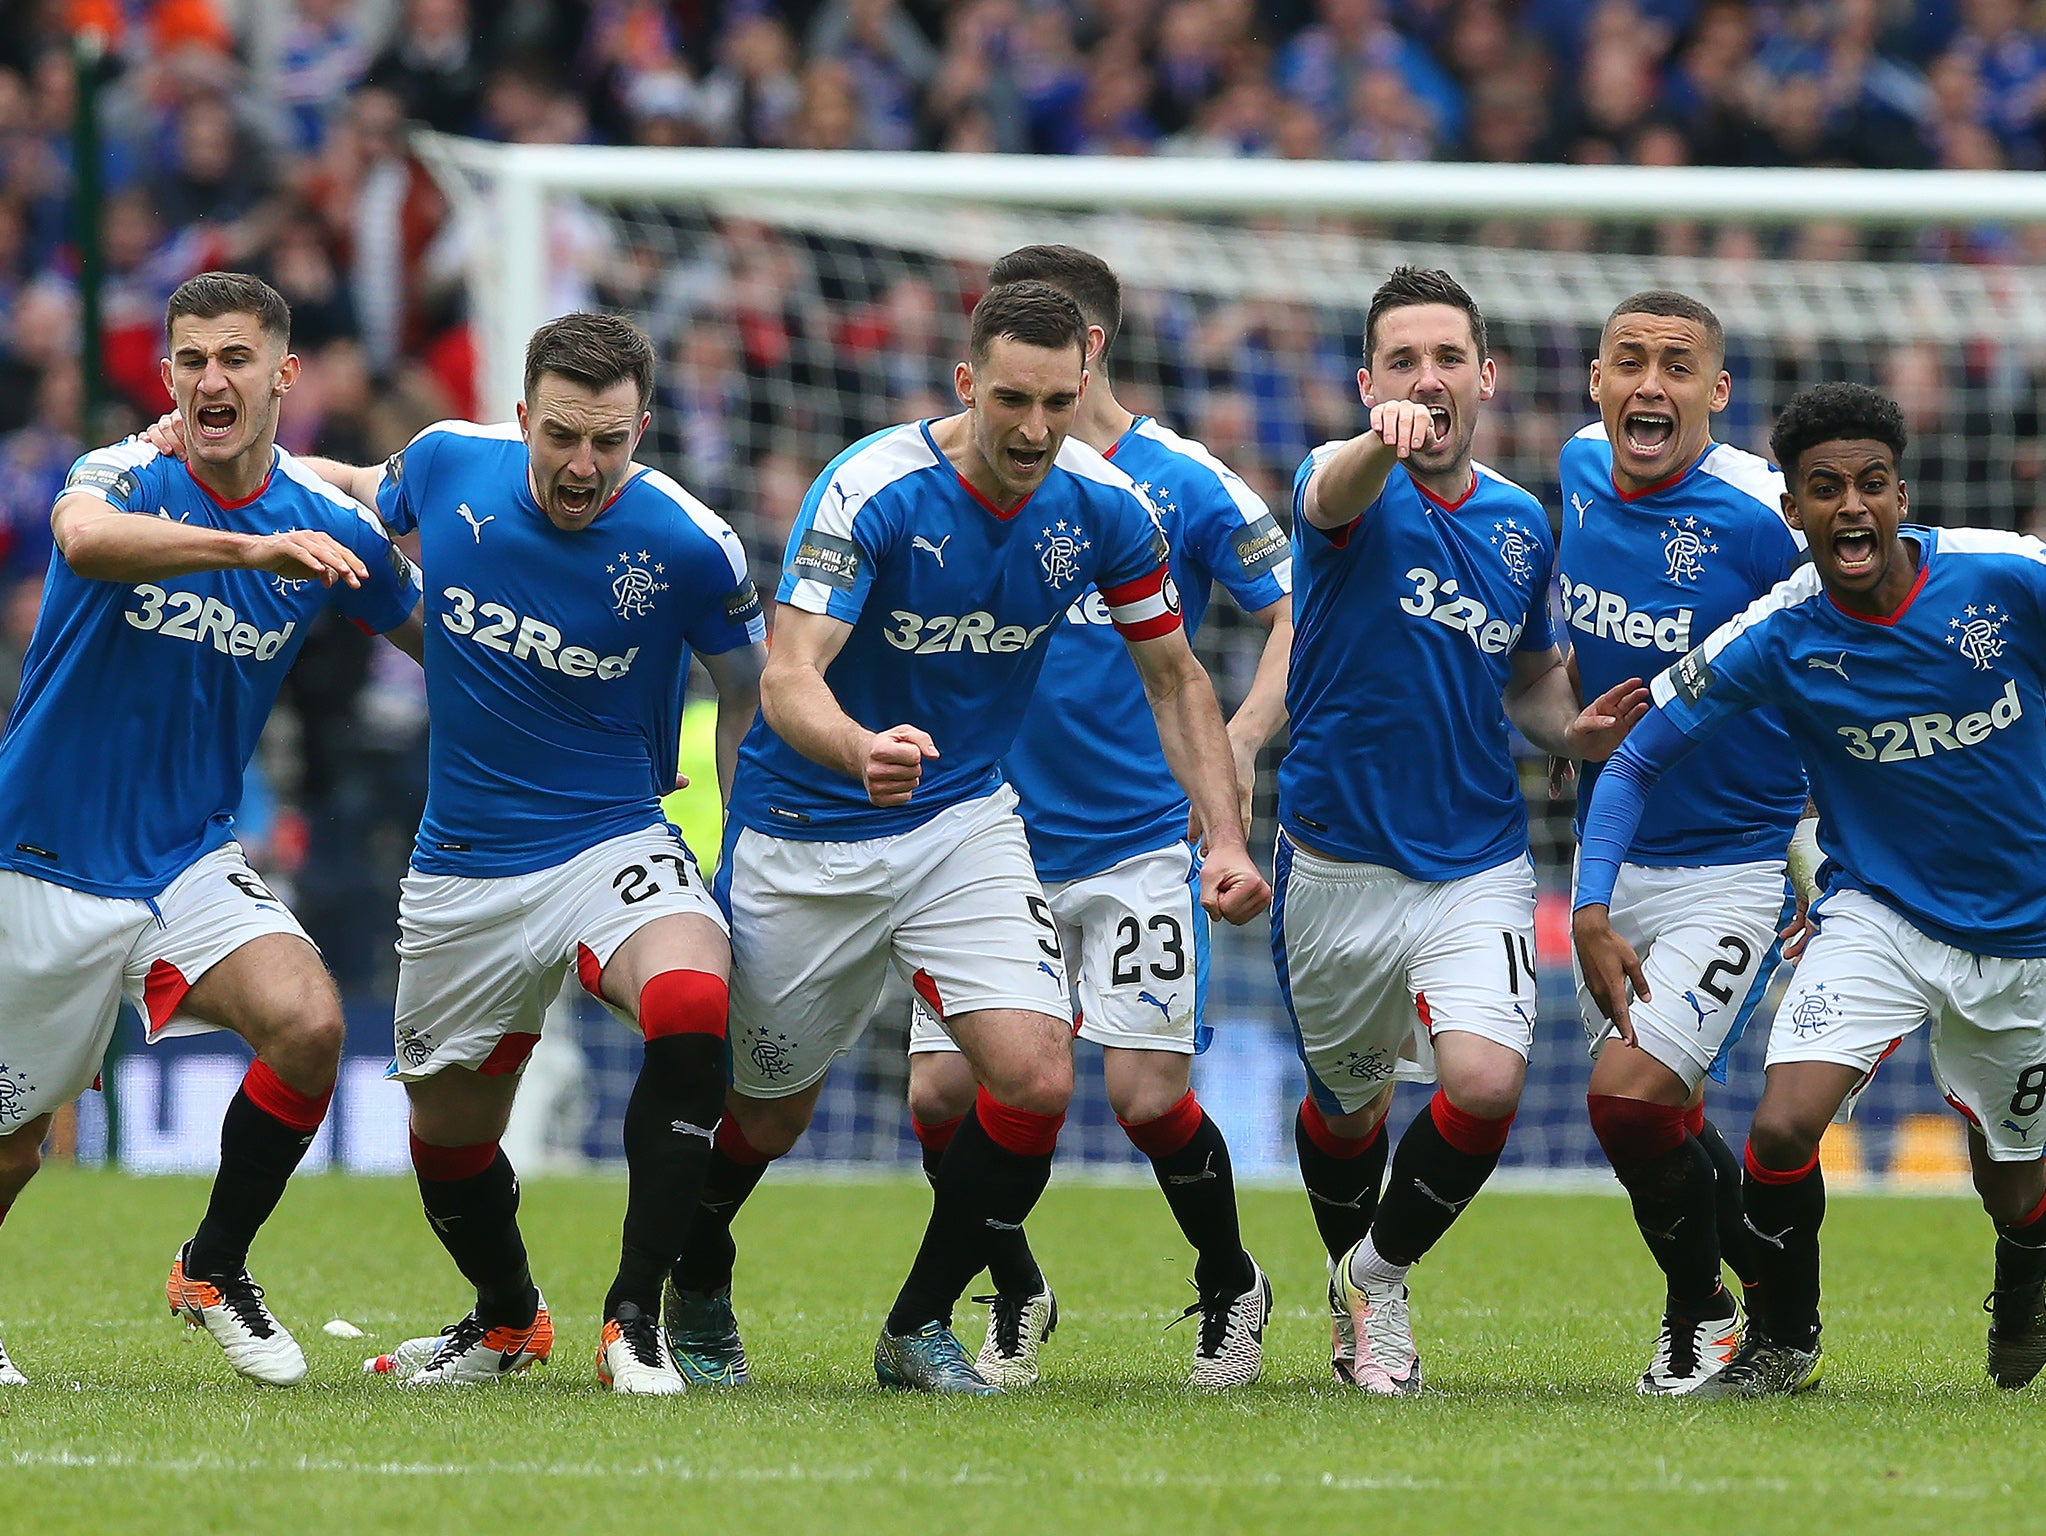 rangers vs celtic - photo #11